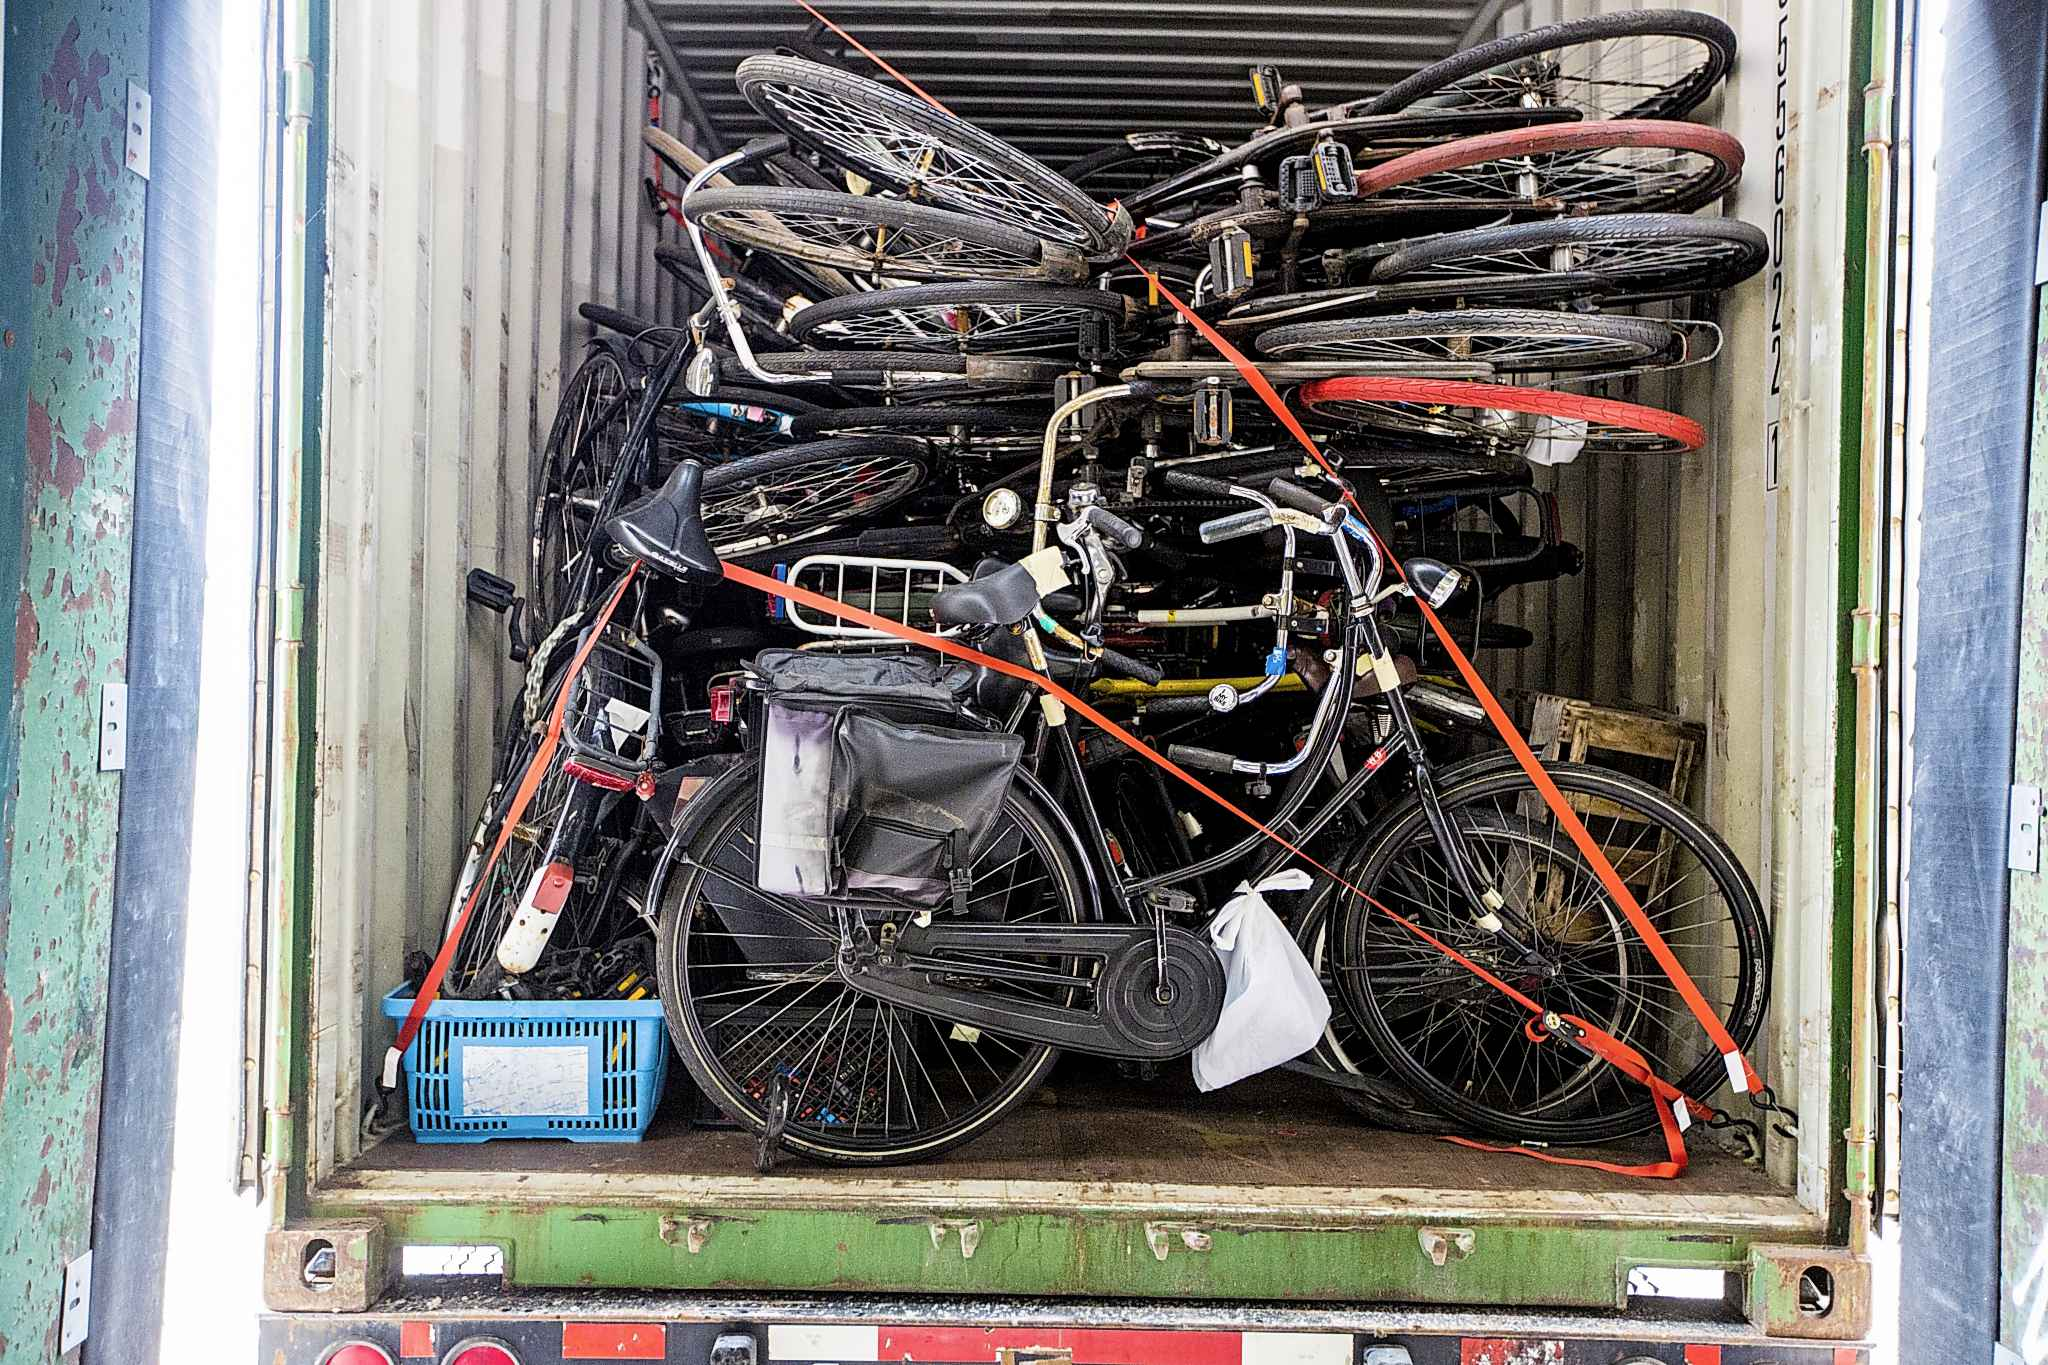 The bikes are purposefully devoid of bling, to help deter theft. (Mikaela MacKenzie / Winnipeg Free Press)